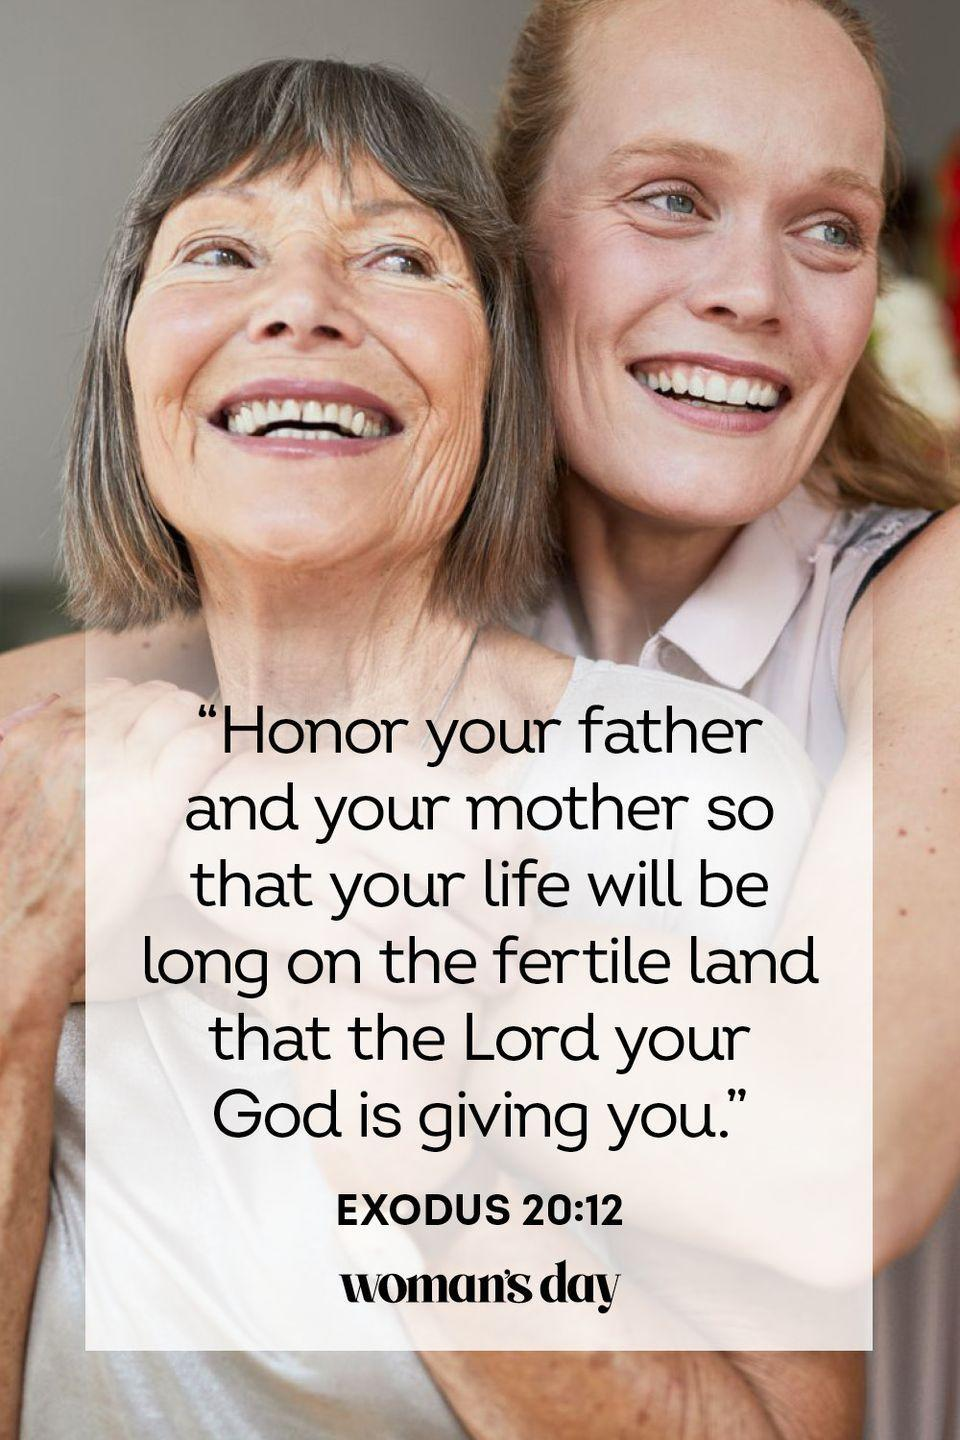 "<p>""Honor your father and your mother so that your life will be long on the fertile land that the Lord your God is giving you.""</p><p><strong>The Good News: </strong>When you uphold this commandment and show respect to your parents, you are also honoring the Lord, which will allow you to live a long and fulfilling life. </p>"